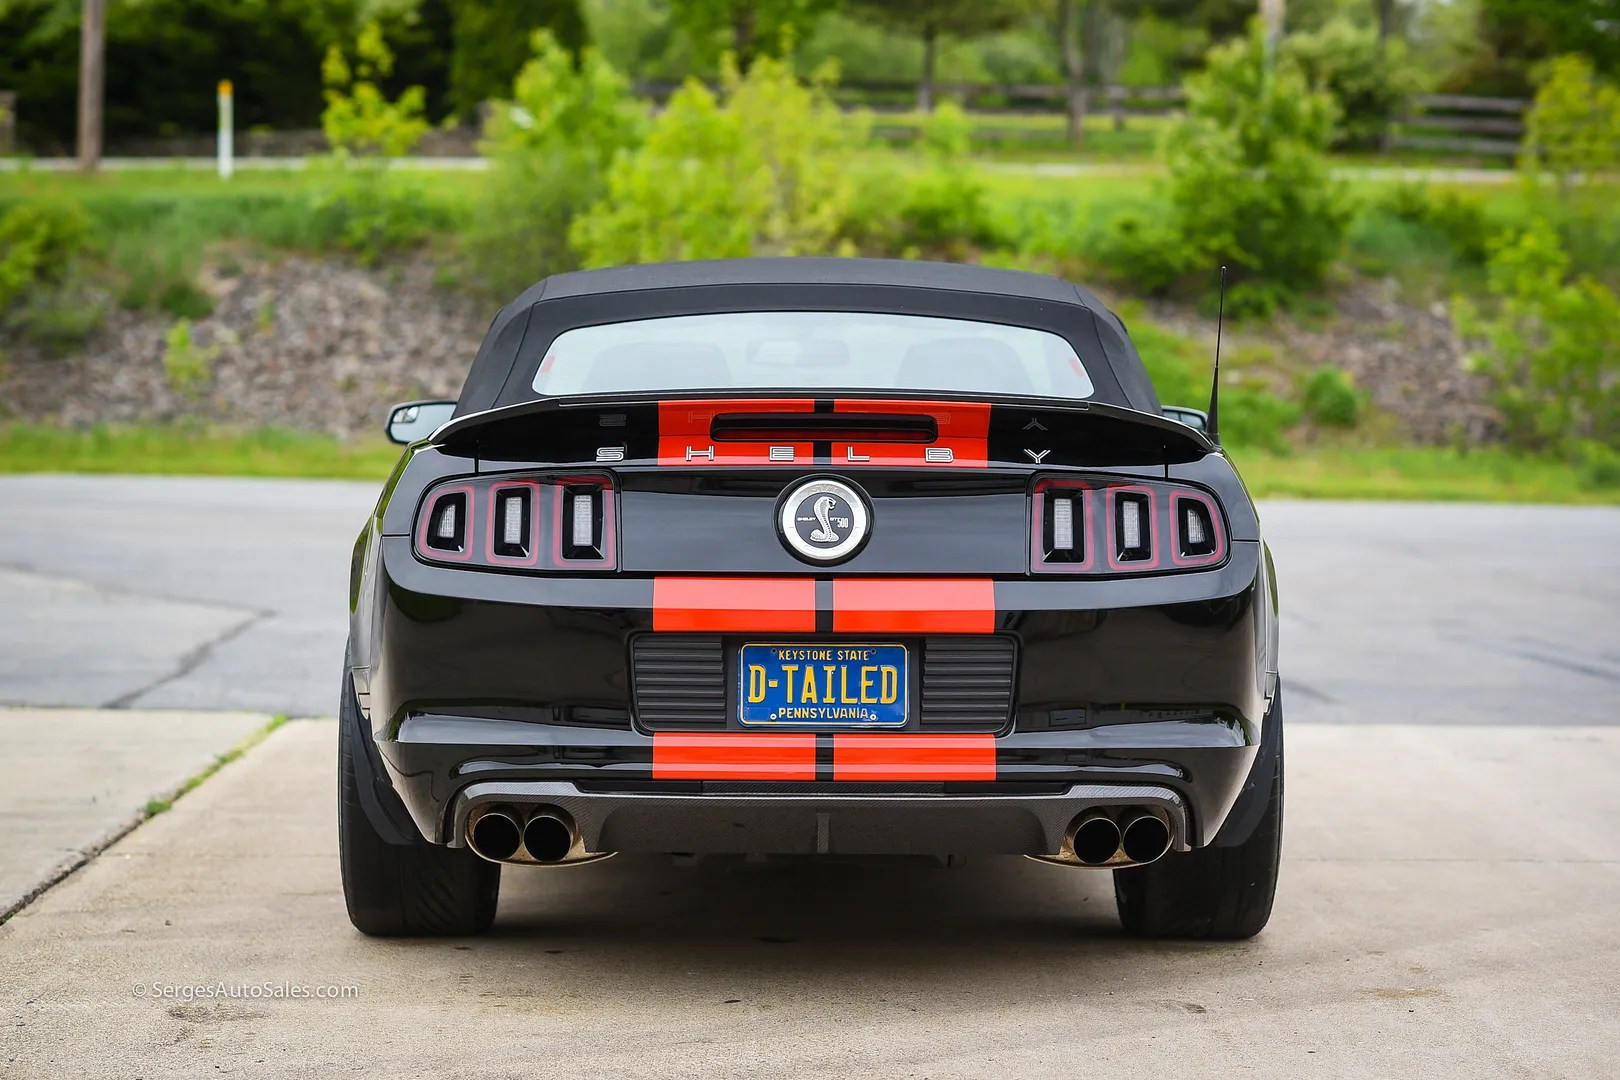 photo Serges-Auto-Sales-shelby-mustang-gt-for-sale-convertible-gt500-scranton-pa-11_zpshd0rwjgt.jpg